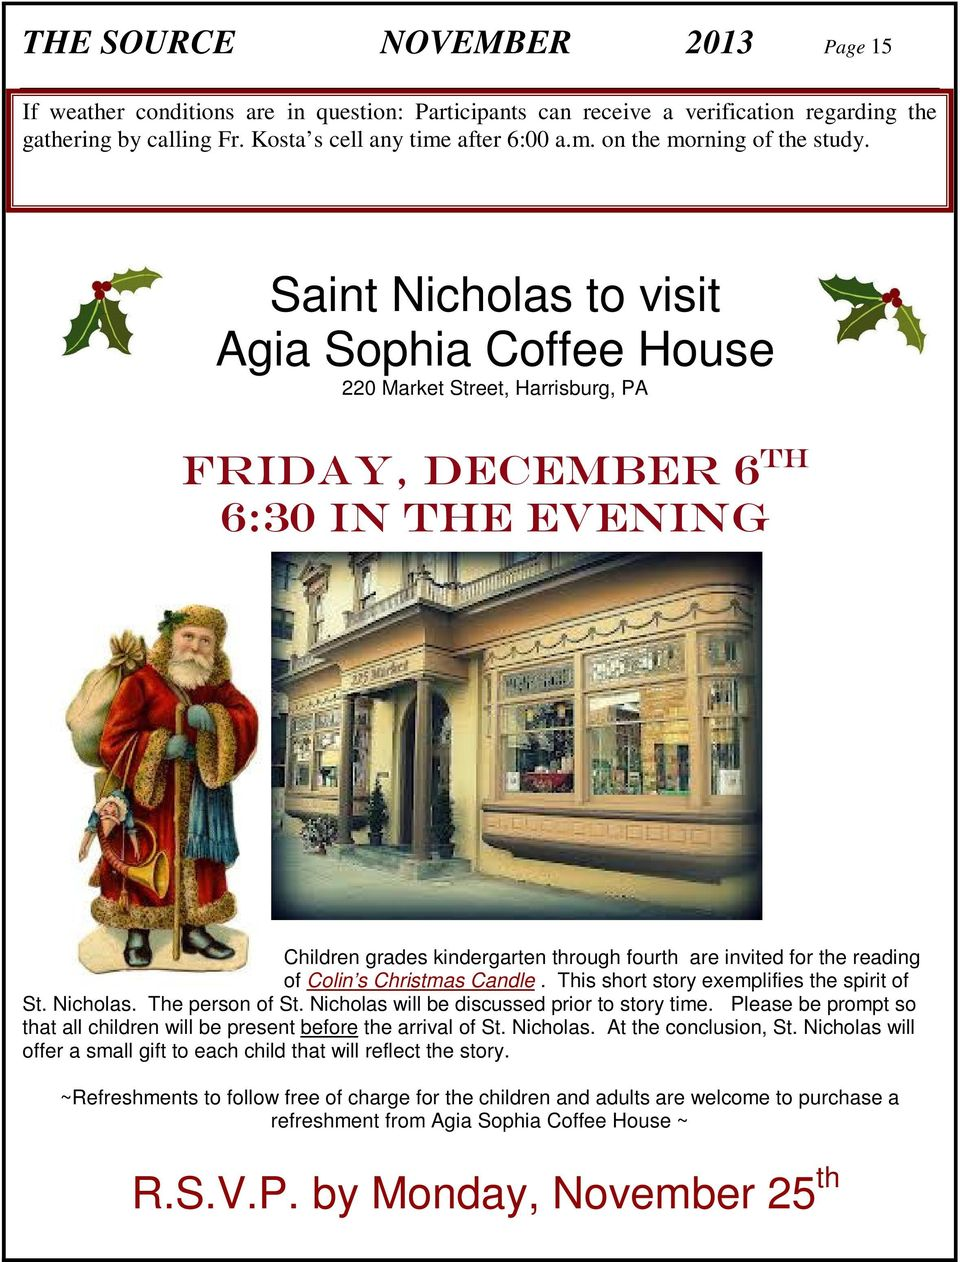 Saint Nicholas to visit Agia Sophia Coffee House 220 Market Street, Harrisburg, PA Friday, December 6 th 6:30 In the evening Children grades kindergarten through fourth are invited for the reading of